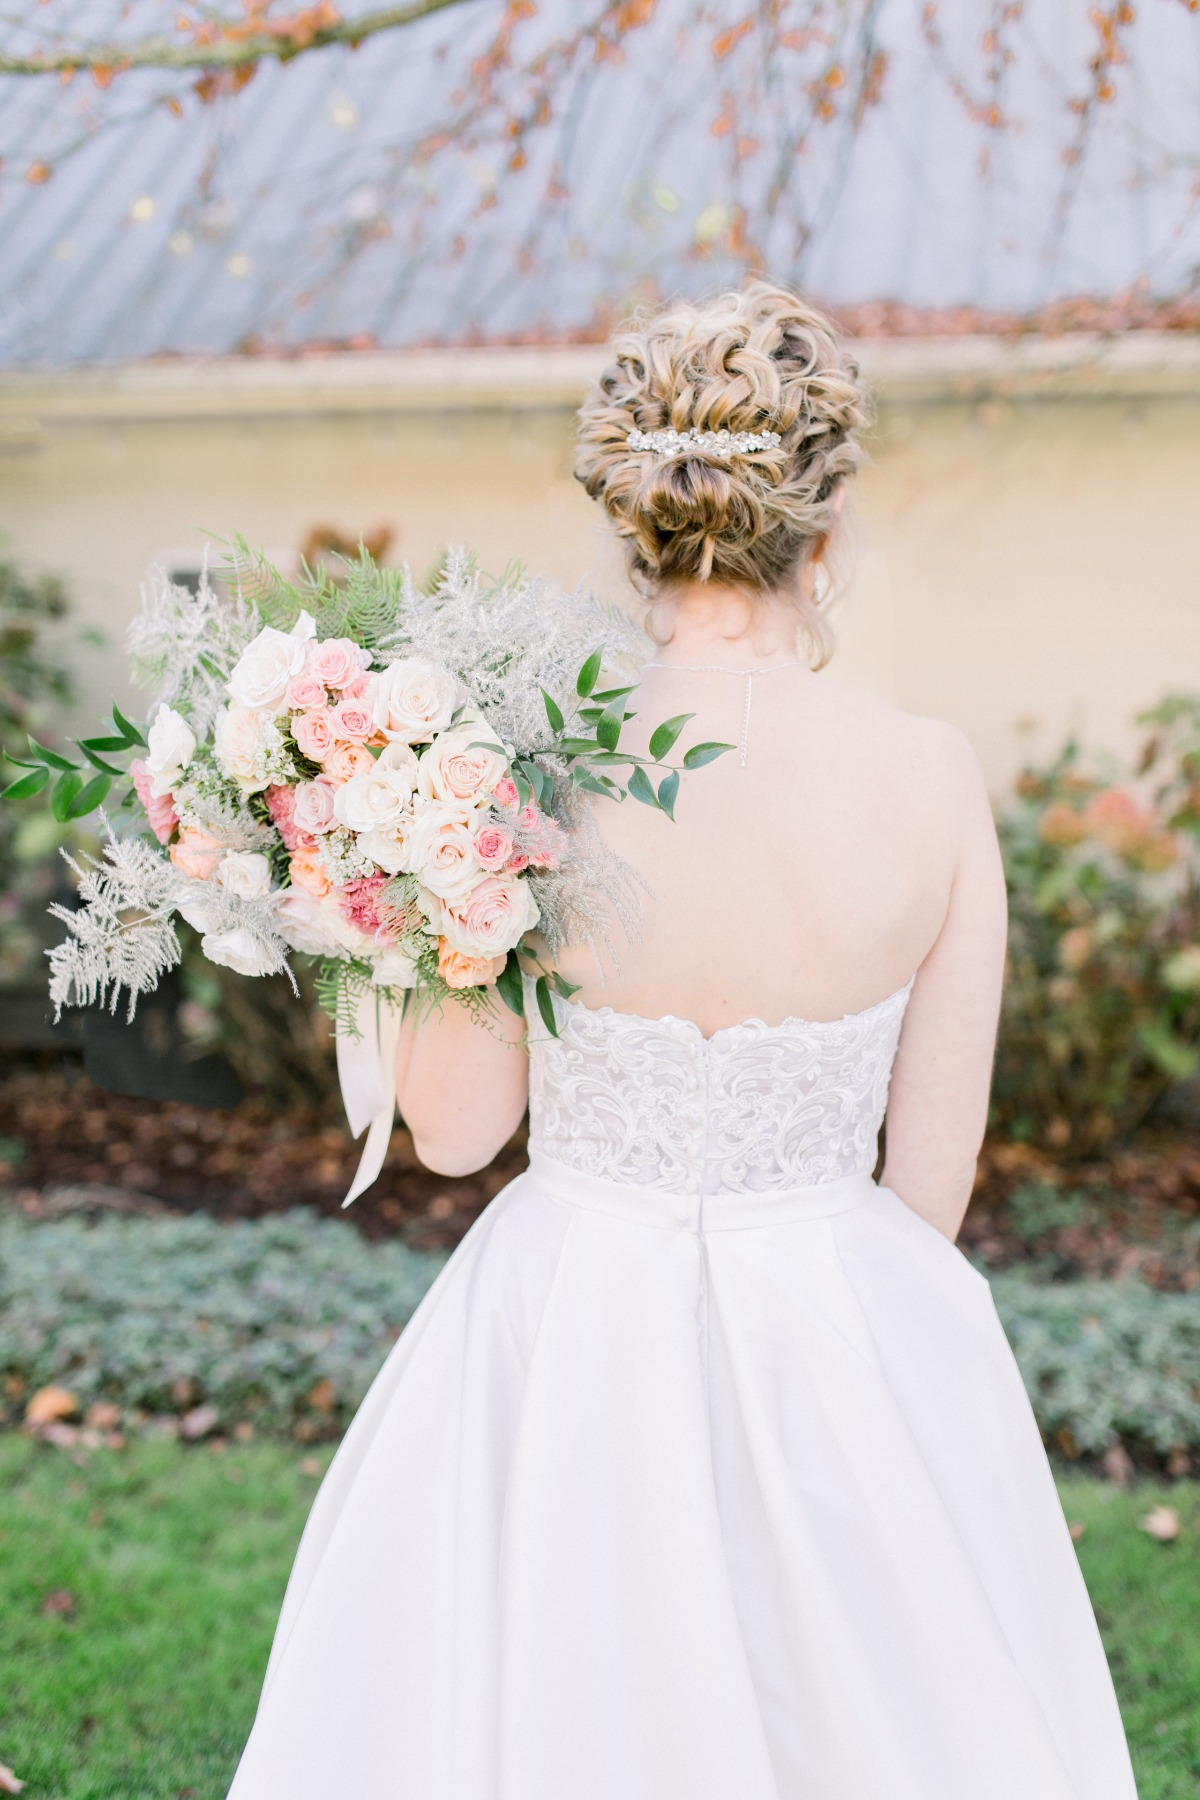 Bridal hair updo and wedding bouquet